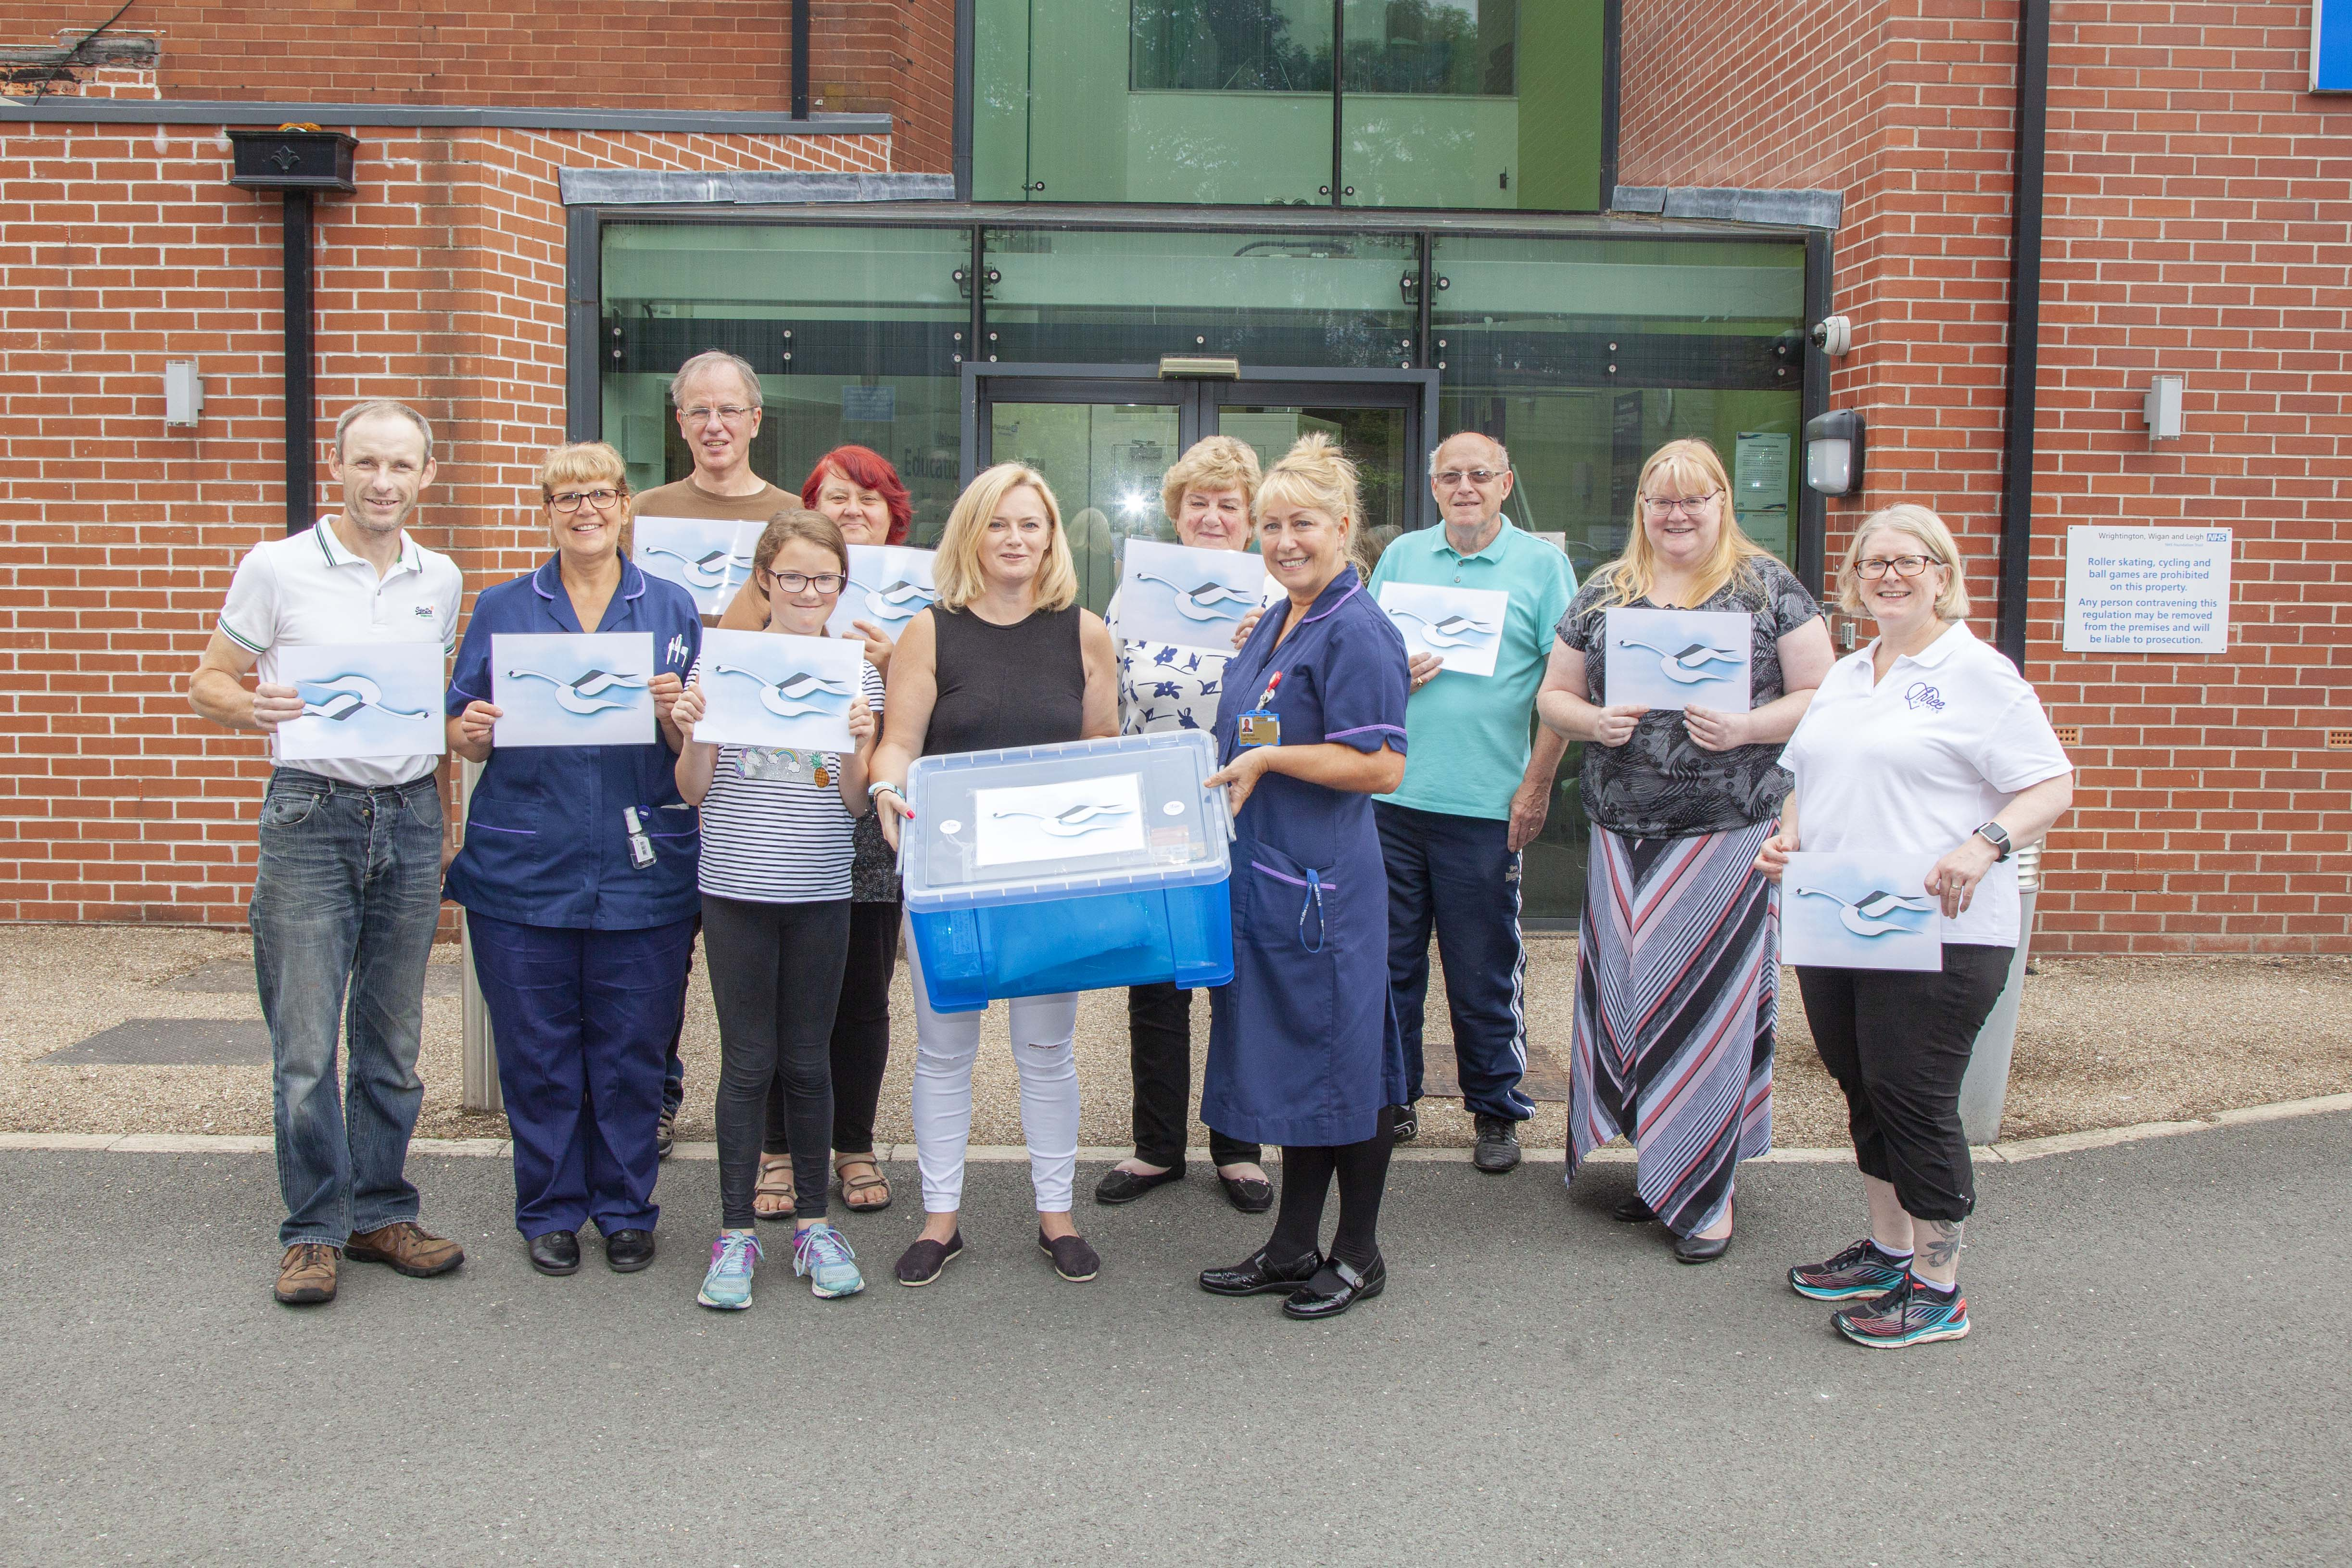 , Boost for Bereavement Boxes, Skem News - The Top Source for Skelmersdale News